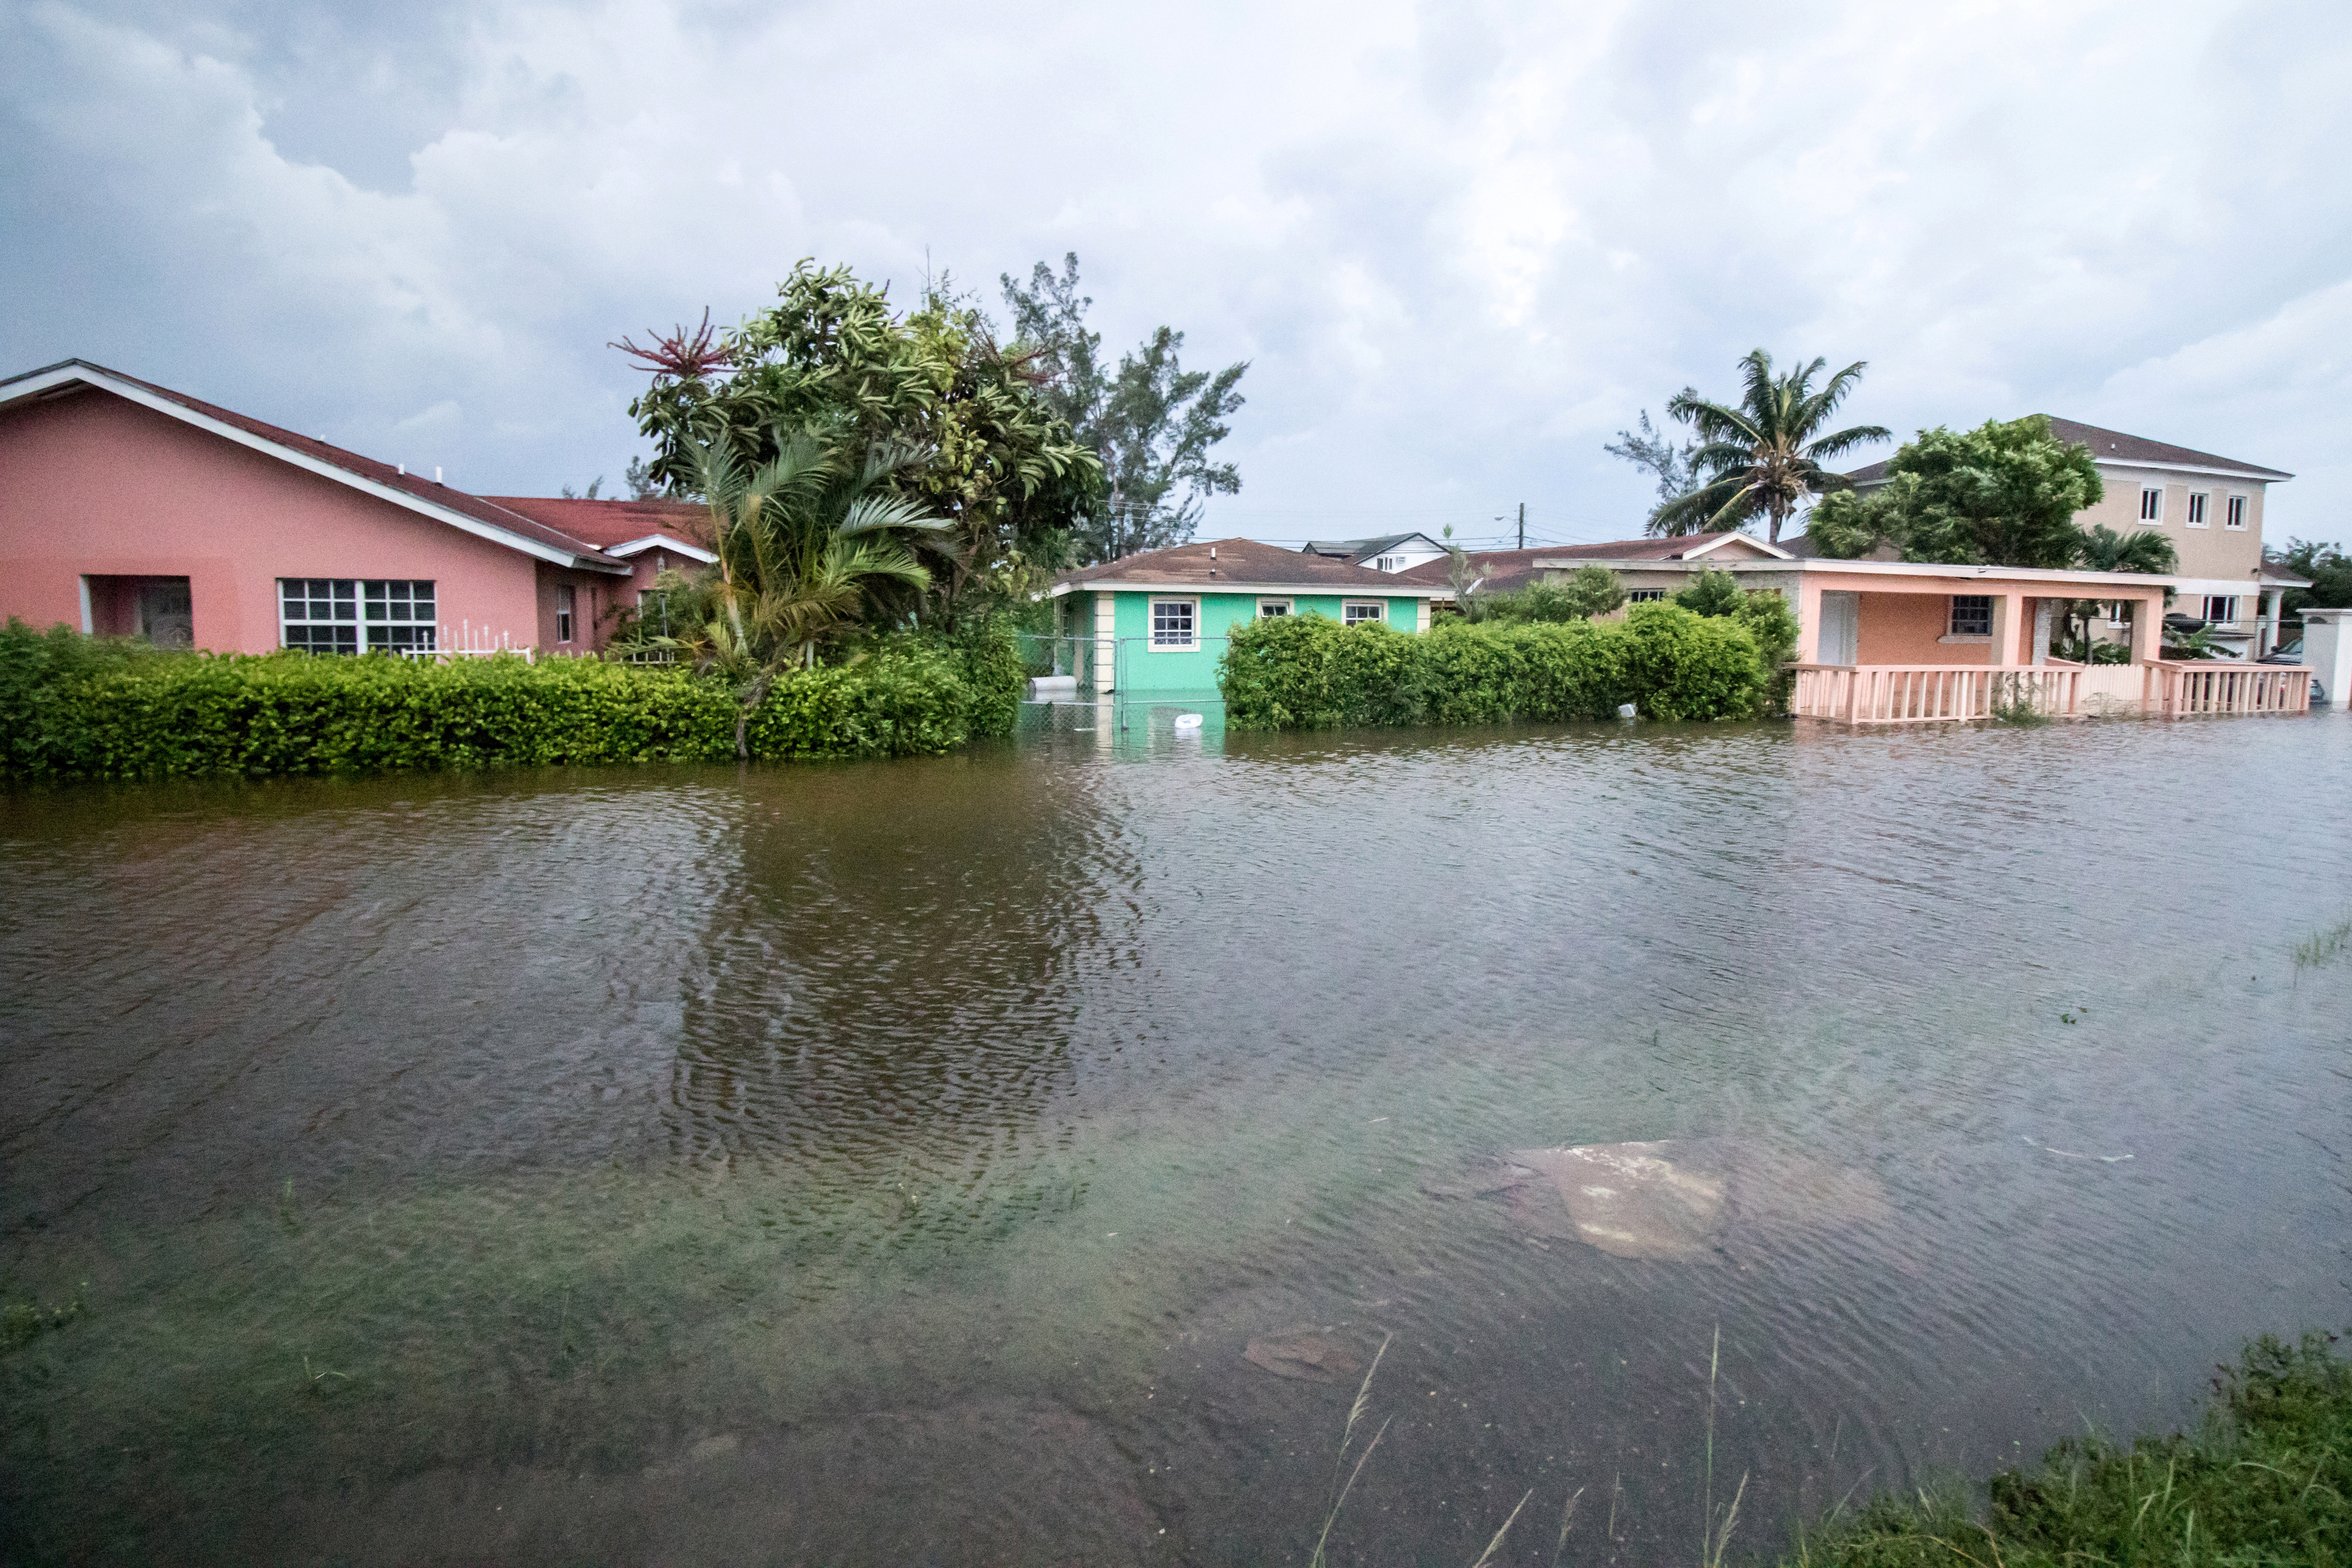 Houses line a flooded street after the effects of Hurricane Dorian arrived in Nassau, Bahamas on September 2.